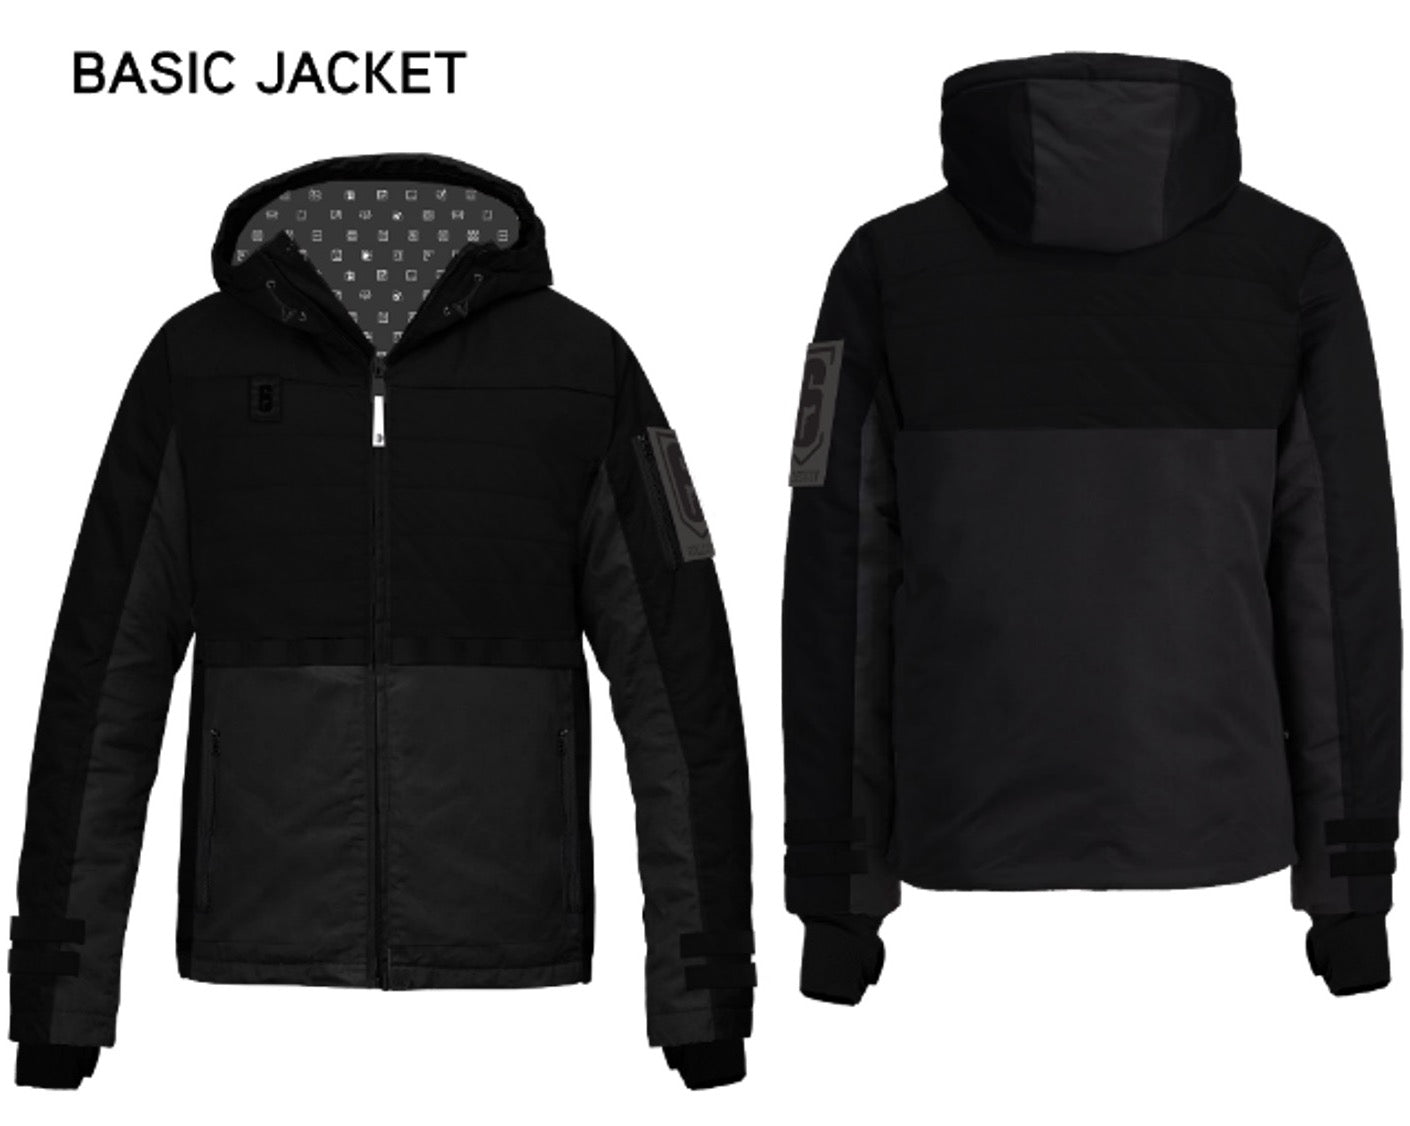 Rainbow Six Collection Classic Operator Jacket Black